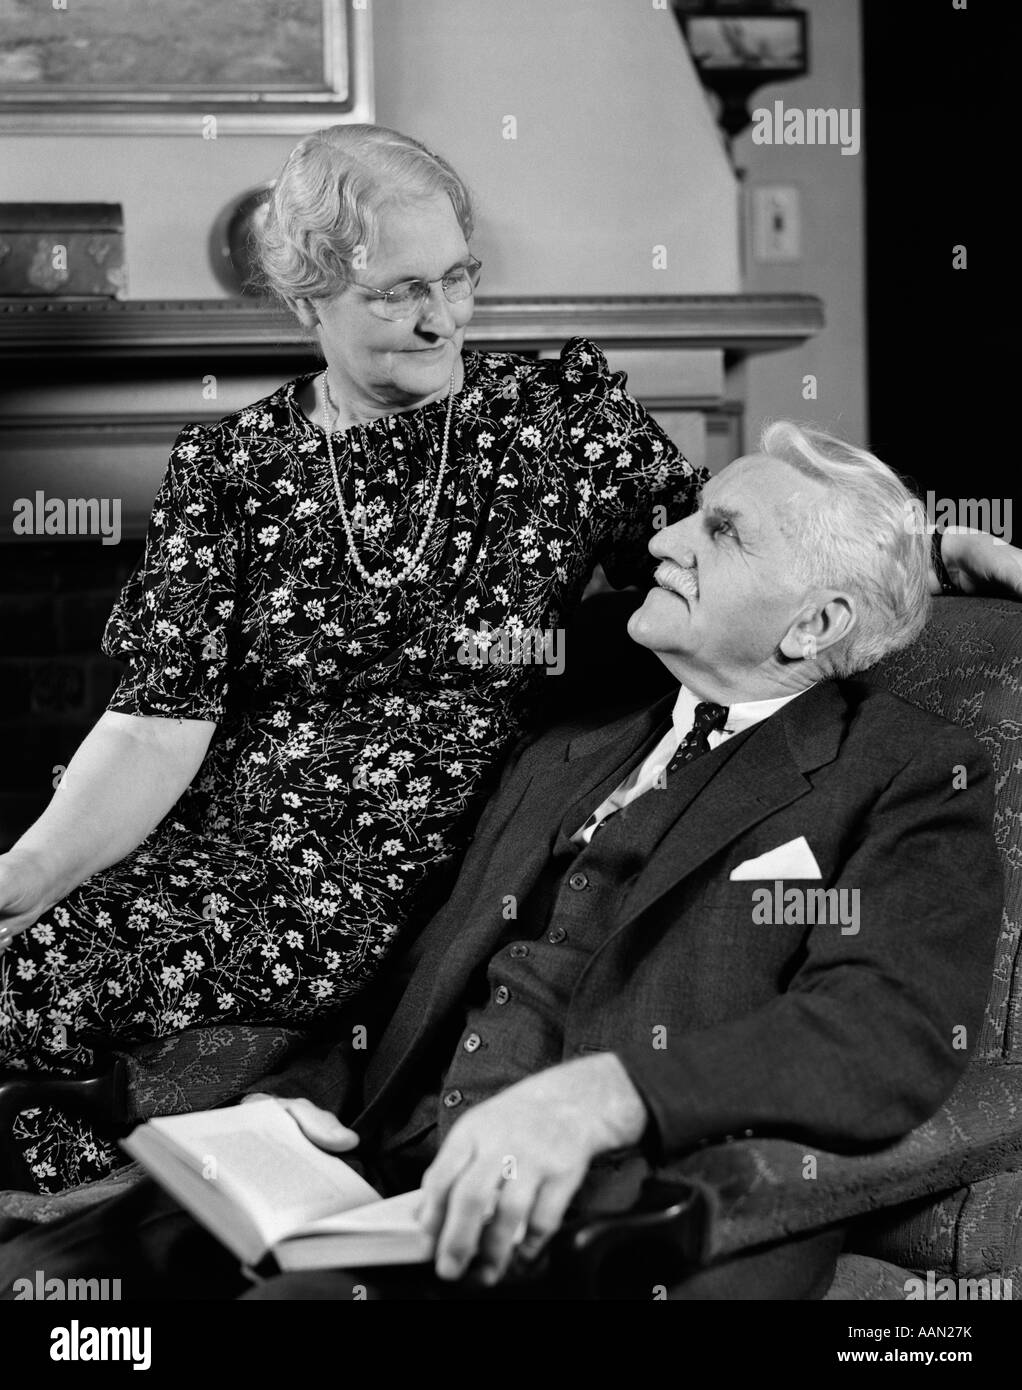 1940s ELDERLY COUPLE SITTING IN CHAIR LOOKING AT EACH OTHER - Stock Image